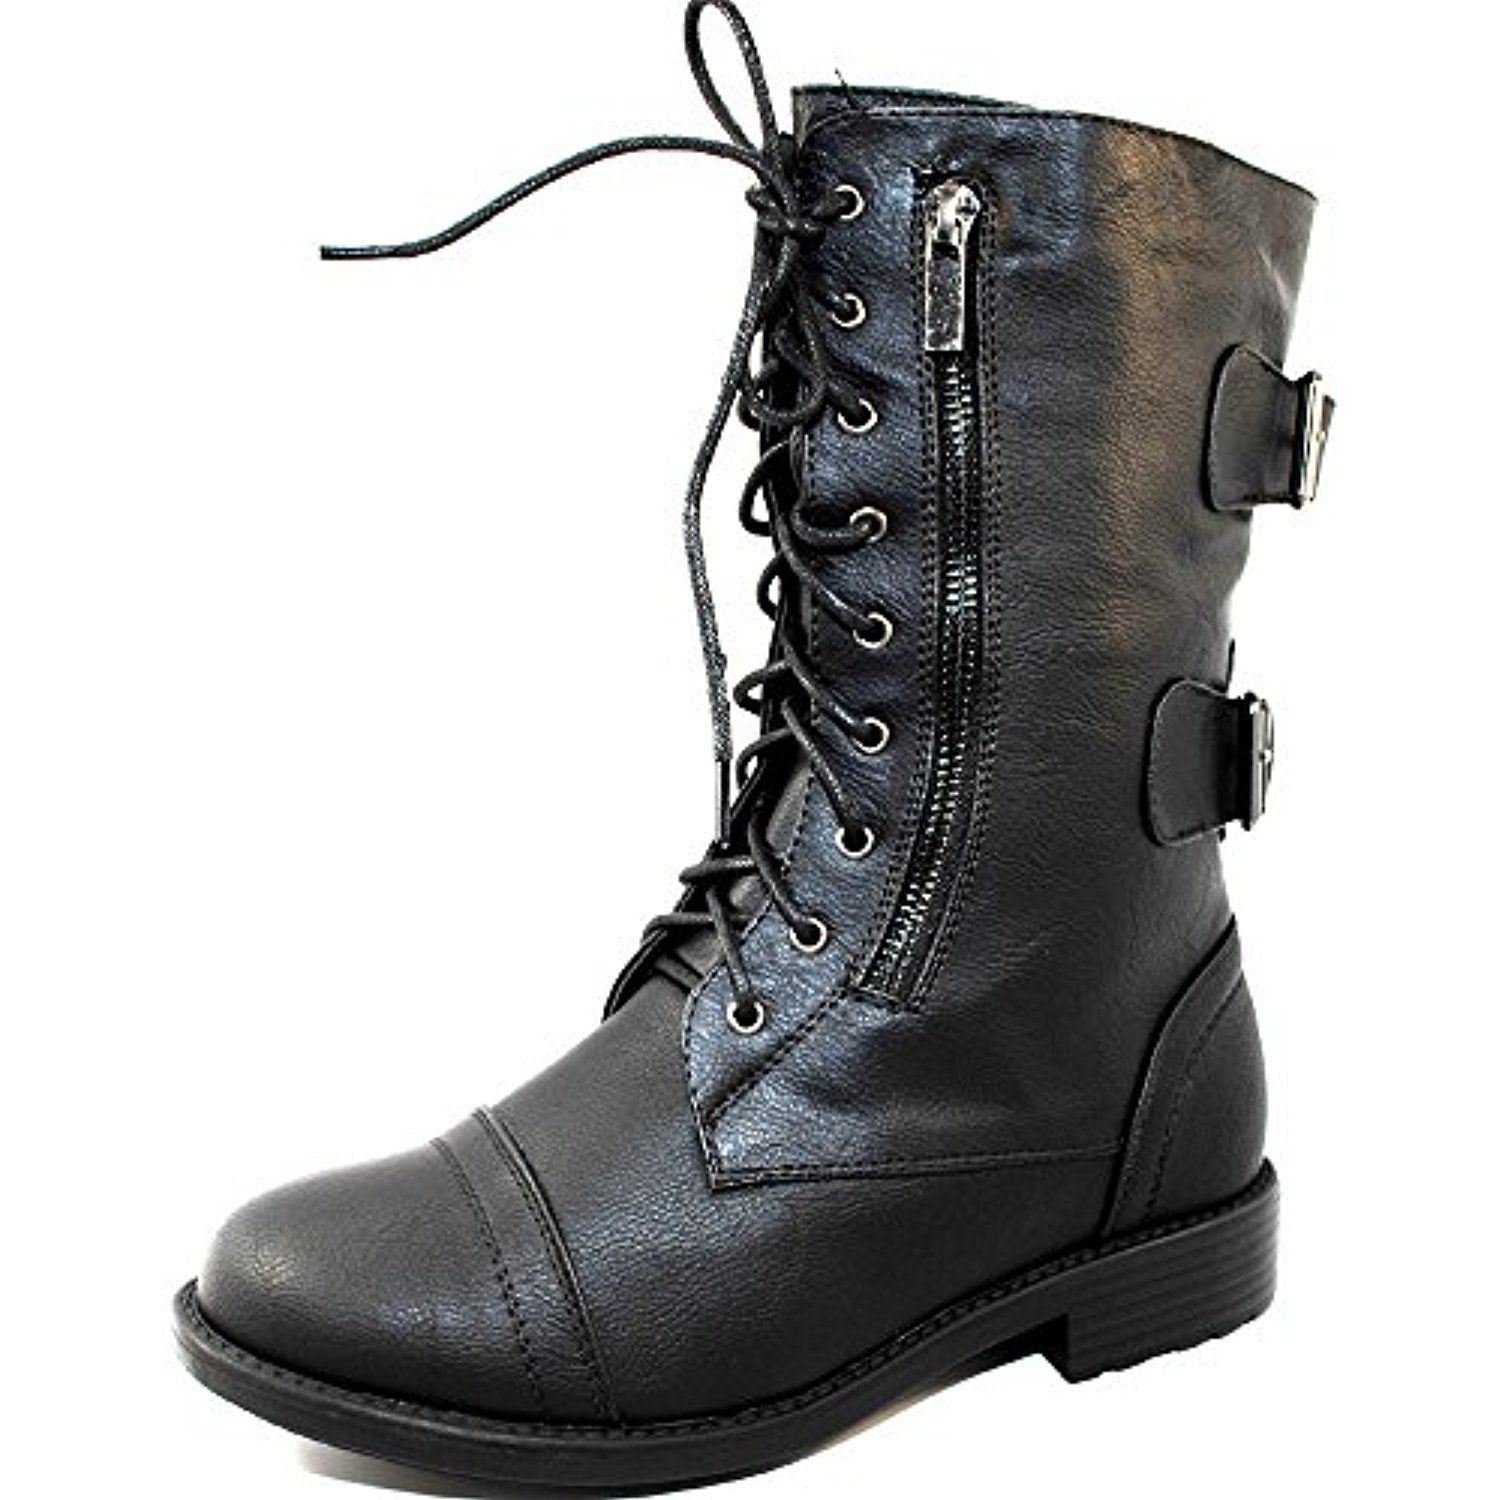 TrendSup Anya-1 Women's Military Lace up Mid Calf Combat Boots